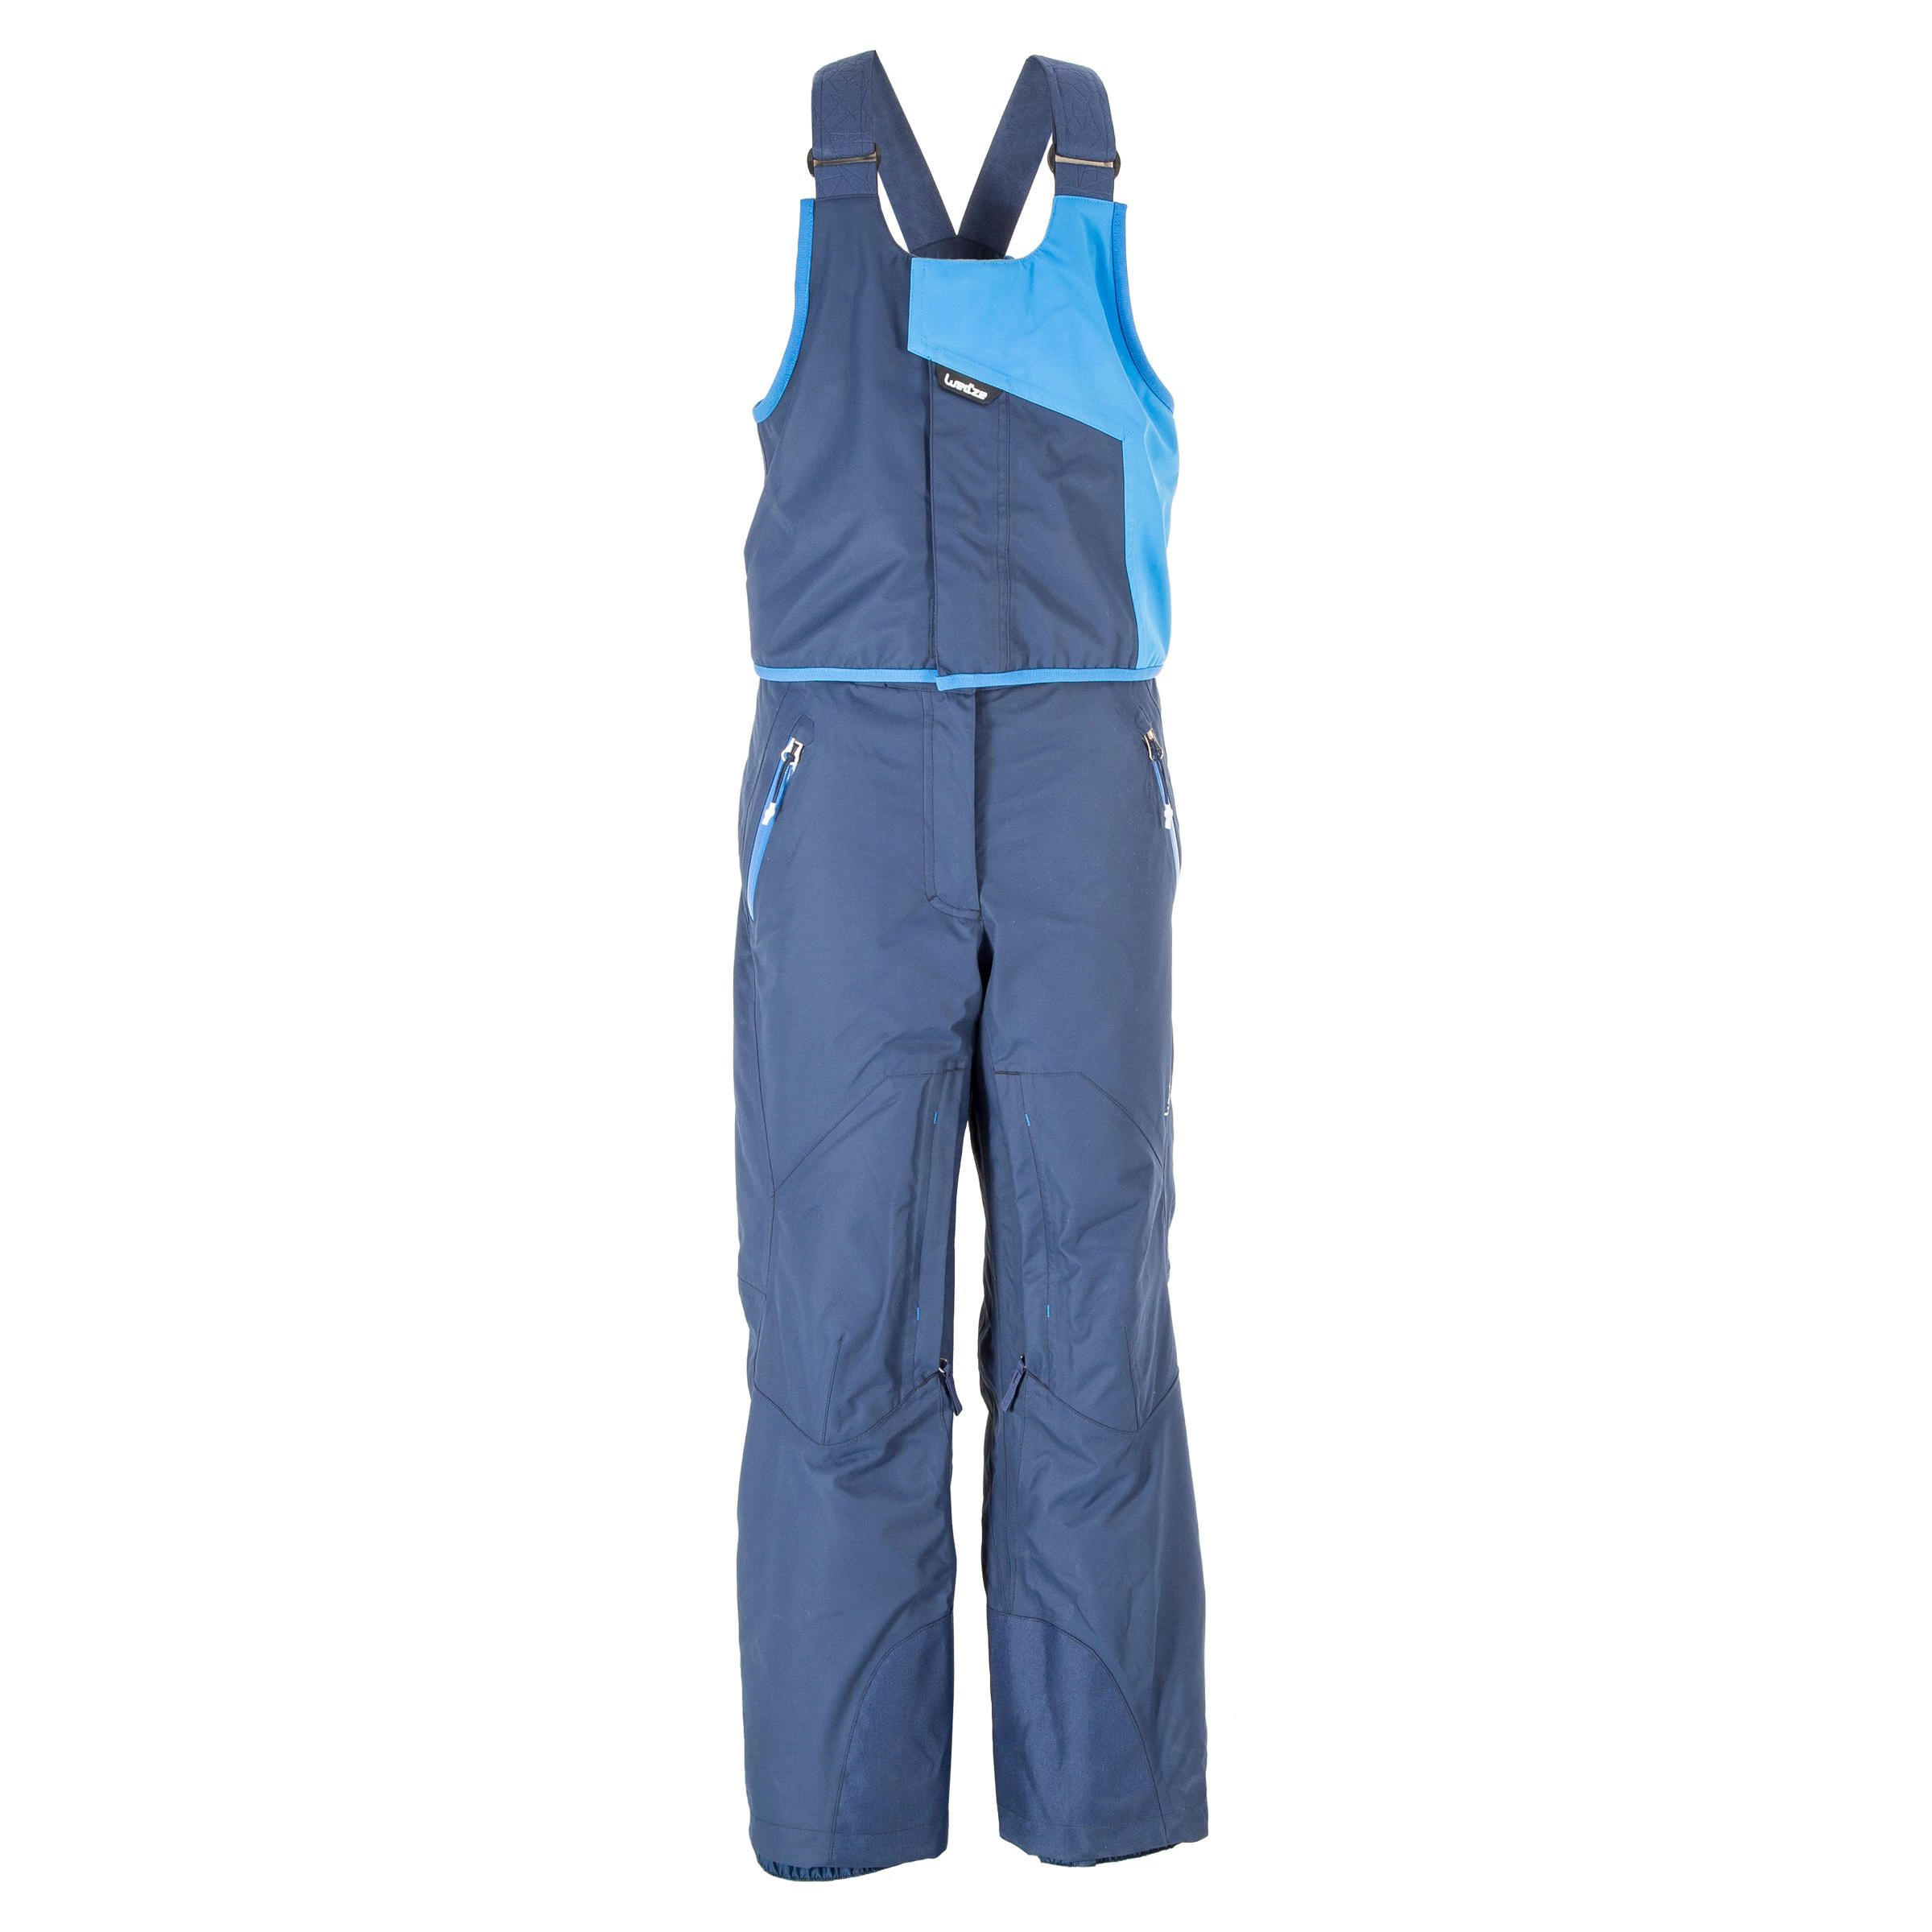 Children's All Mountain 990 Ski Pants Blue